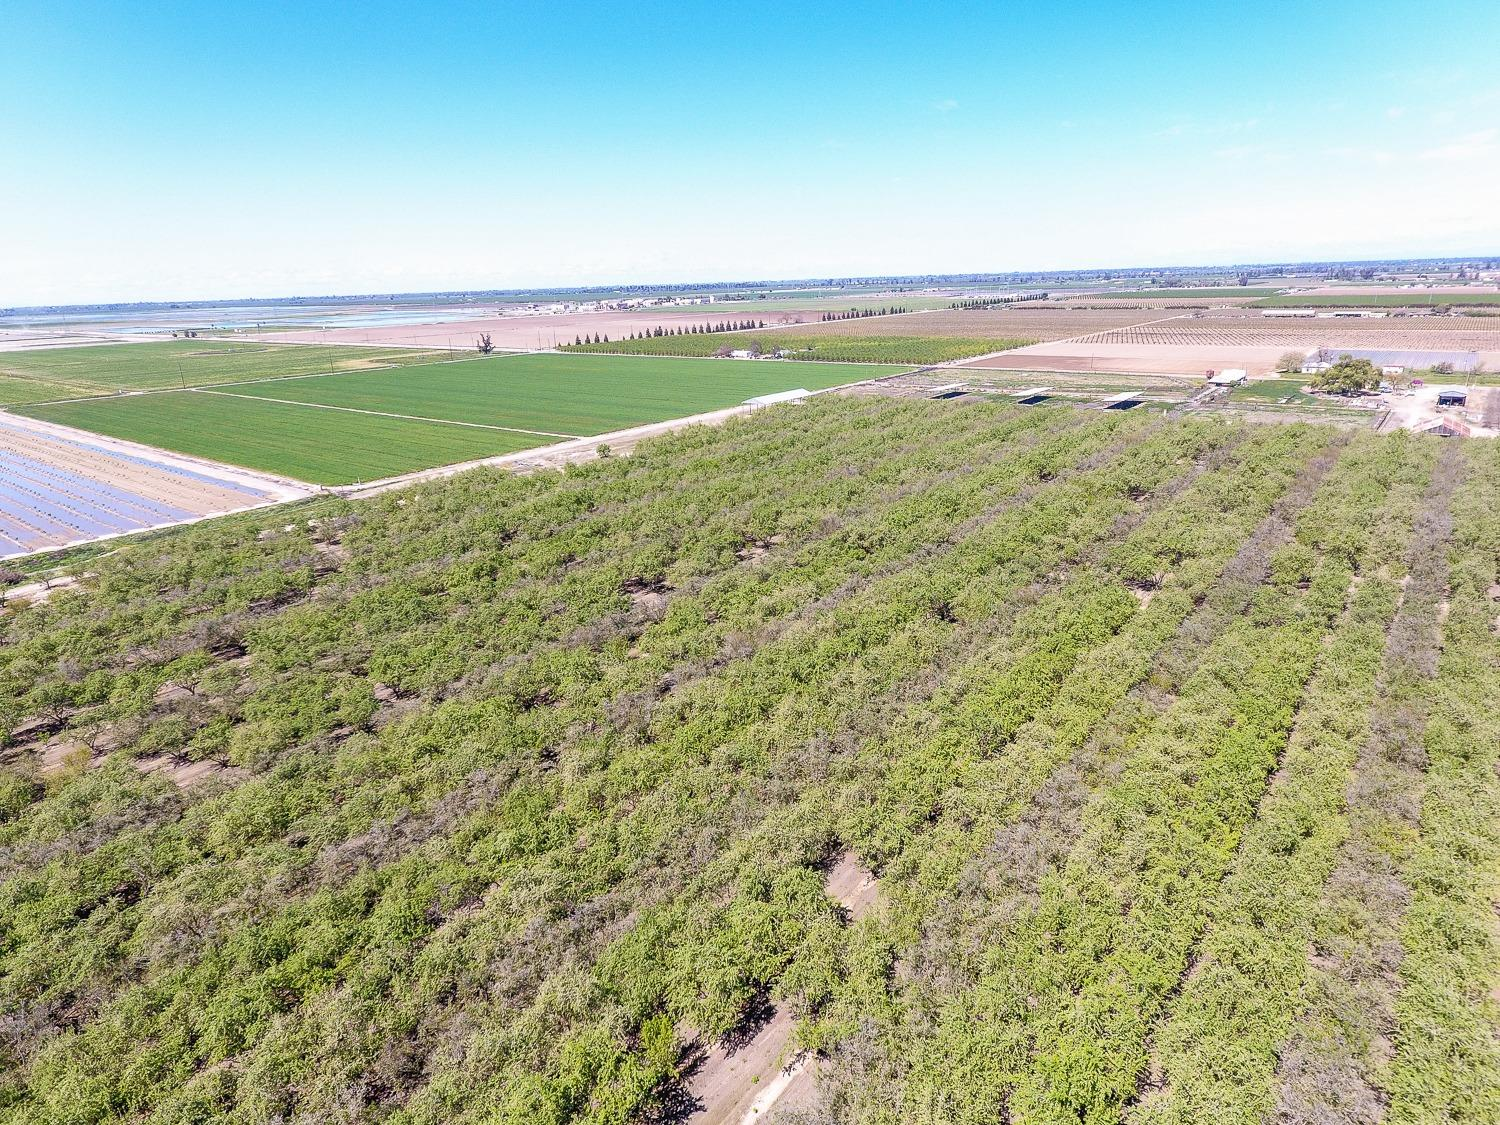 92.64 acres w/FID water rights.  Seller will discount purchase price if providing seller financing.  Property includes 2 Ag wells with 92' standing water.  Well on North Ave, 350' deep +/-, with 25 HP submersible pump; Well on Blythe Ave, 20 HP centrifugal pump, recently added 20' of new casing.  Residence at 3235 S. Blythe, 1200 sq.ft., new roof and AC, includes 6'' pressure system/residential well @ 400' +/-, with 3 HP submersible pump and 86 gallon tank. Residence at 4491, 1000 sq.ft., newer roof and AC, includes 8'' pressure system/domestic well @ 126 ft. +/-, 2 HP new submersible pump, standing water at 89', new 1,500 gallon septic.  Almond Orchard is 39.39 Acres +/-, approx. 19 years old, pipelined, tree spacing 22' x 20', 50% Nopareil; 25% Carmel; and 25% Aldridge.  38.50 Acres +/-, pipelined.  14.75 Acres +/- Former Dairy 20 years ago.  All information was gathered from tax records and seller.  Buyer to verify.